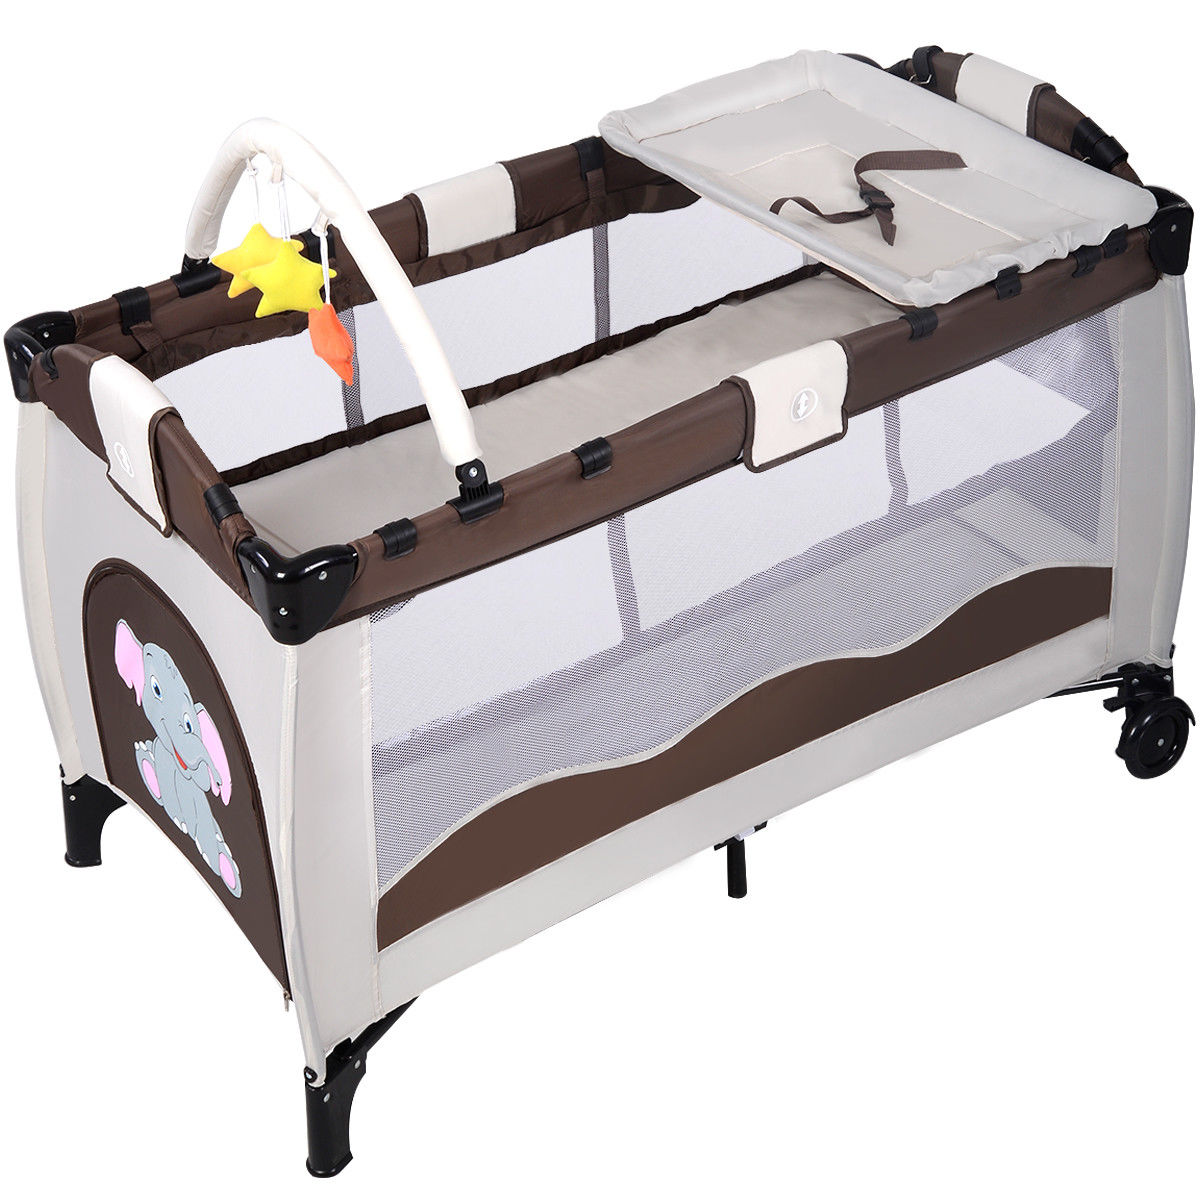 """GHP 48""""x26""""x30"""" Coffee Steel Oxford Fabric Cloth 2-Layer Travel Baby Portable Crib by Globe House Products"""